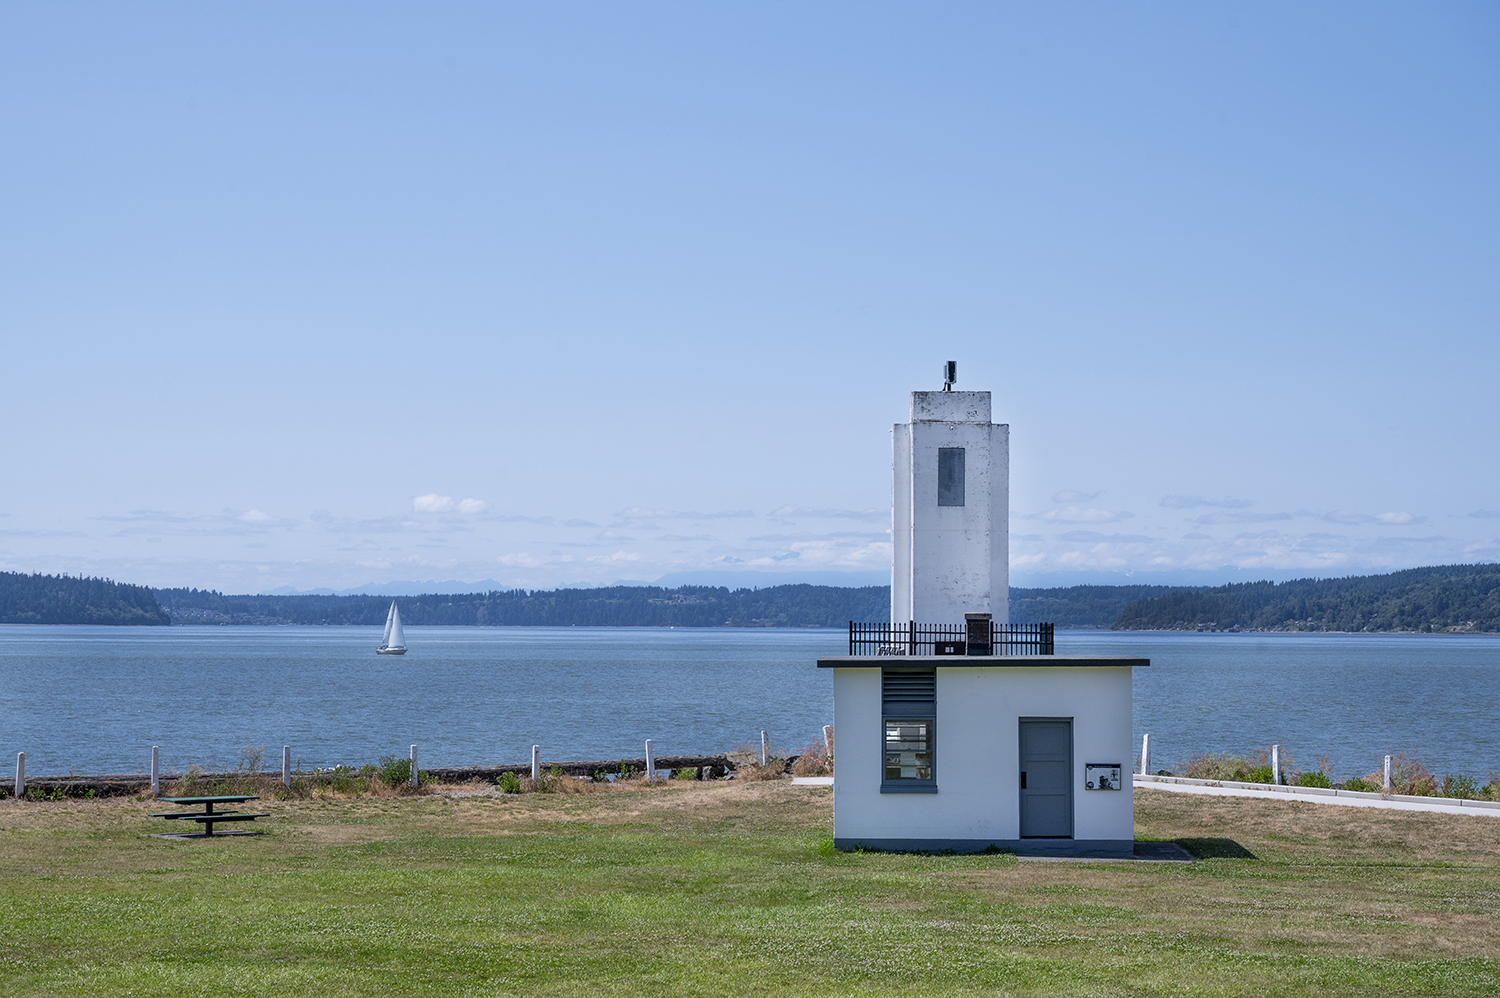 In 1901, the Browns Point lantern post was officially built into a wooden structure lighthouse. Decades later, in 1933, the lighthouse was renovated into a 34 foot tall, concrete masterpiece with all the art deco goodness, and fully automated in 1963. (Image: Rachael Jones / Seattle Refined)